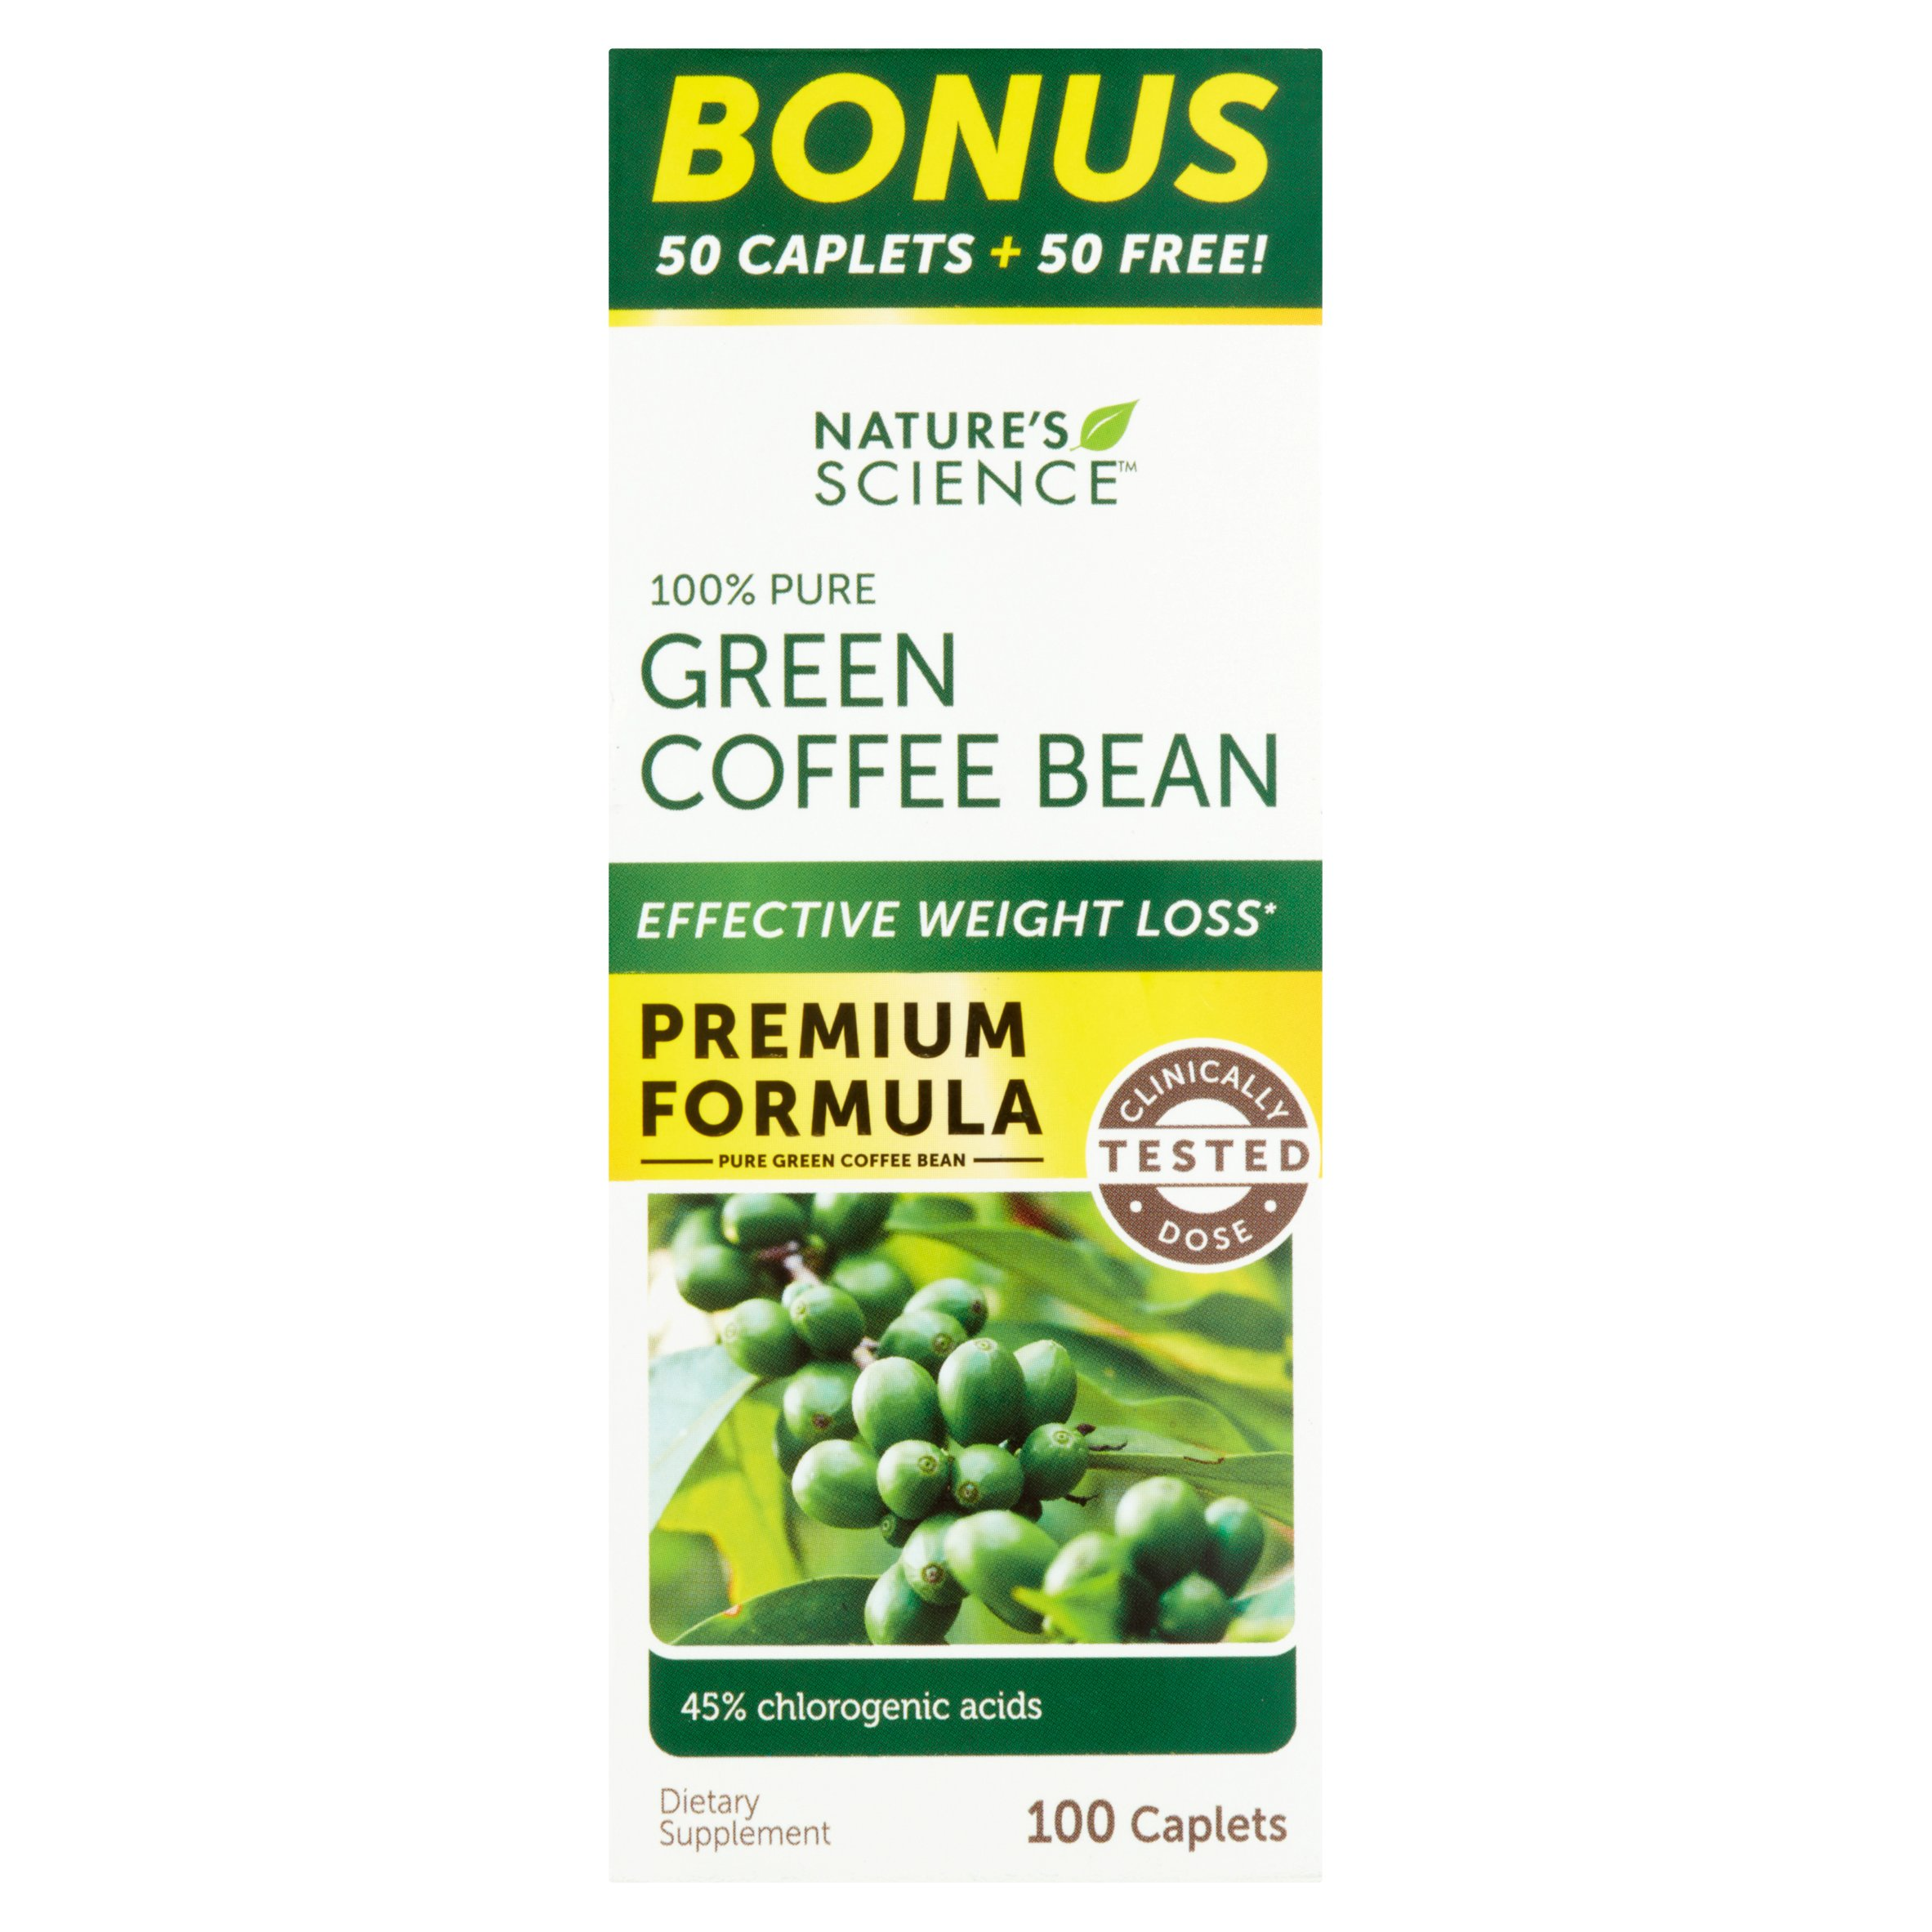 Nature's Science Green Coffee Bean Dietary Supplement, 100 count